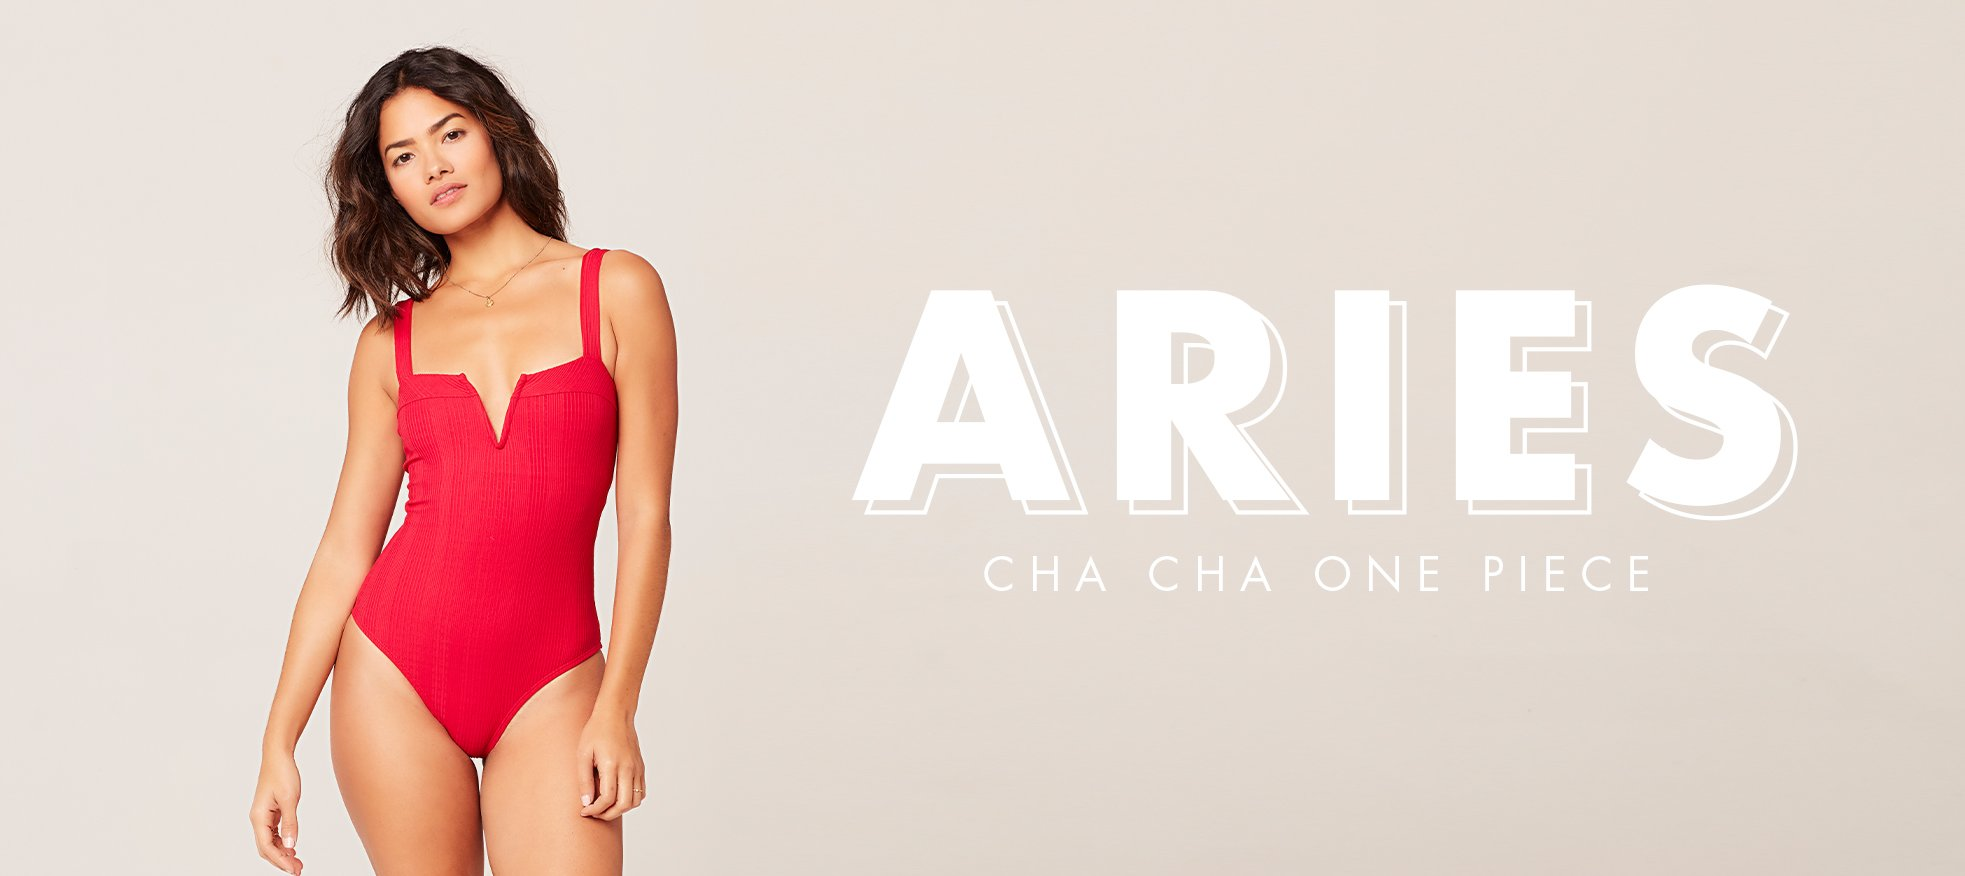 model wearing lipstick red pointelle rib cha cha one piece swimsuit